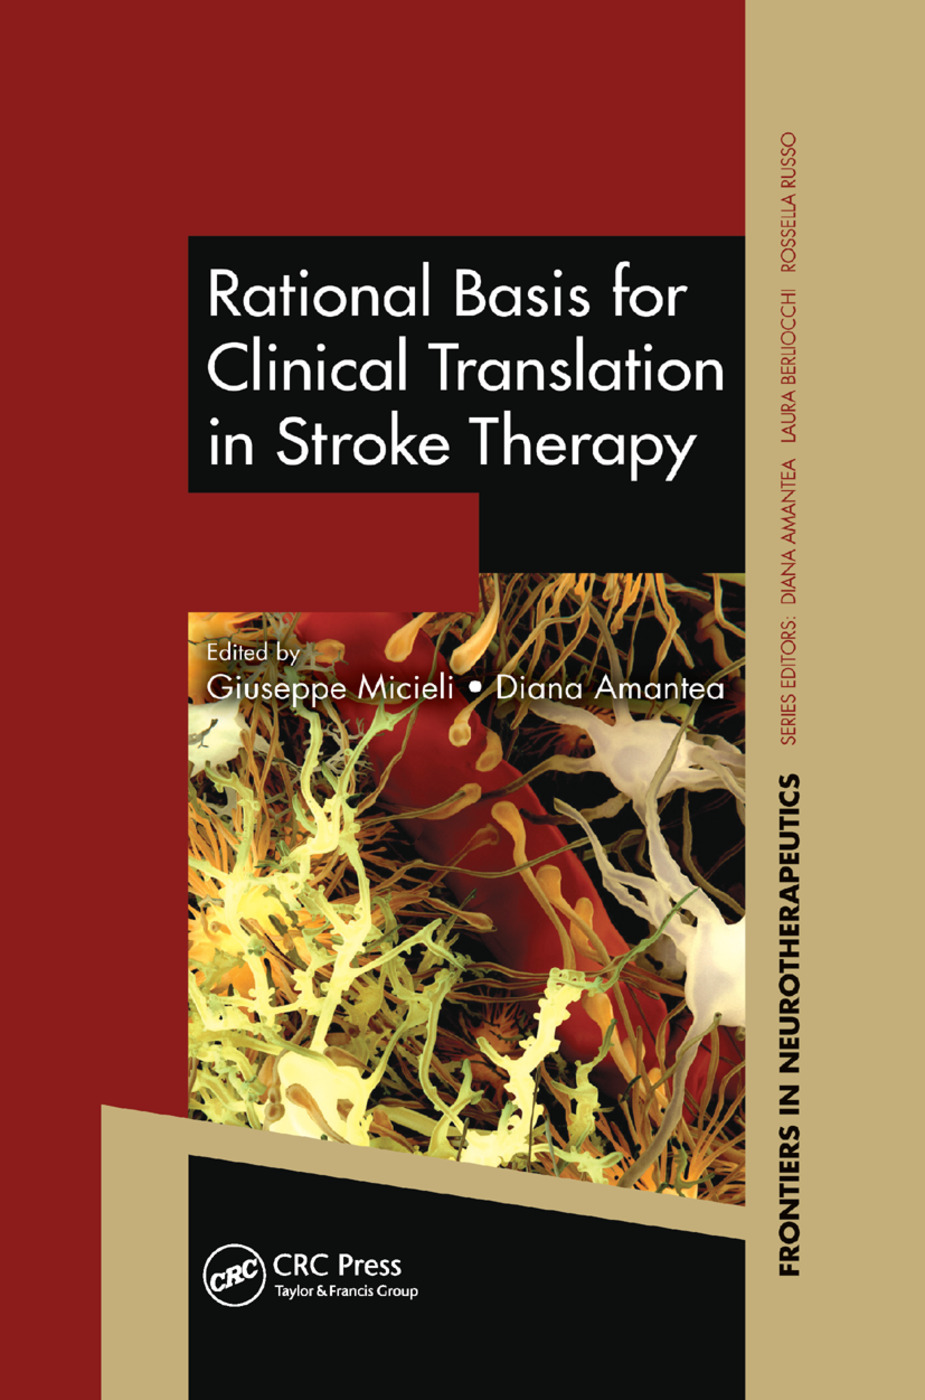 Rational Basis for Clinical Translation in Stroke Therapy